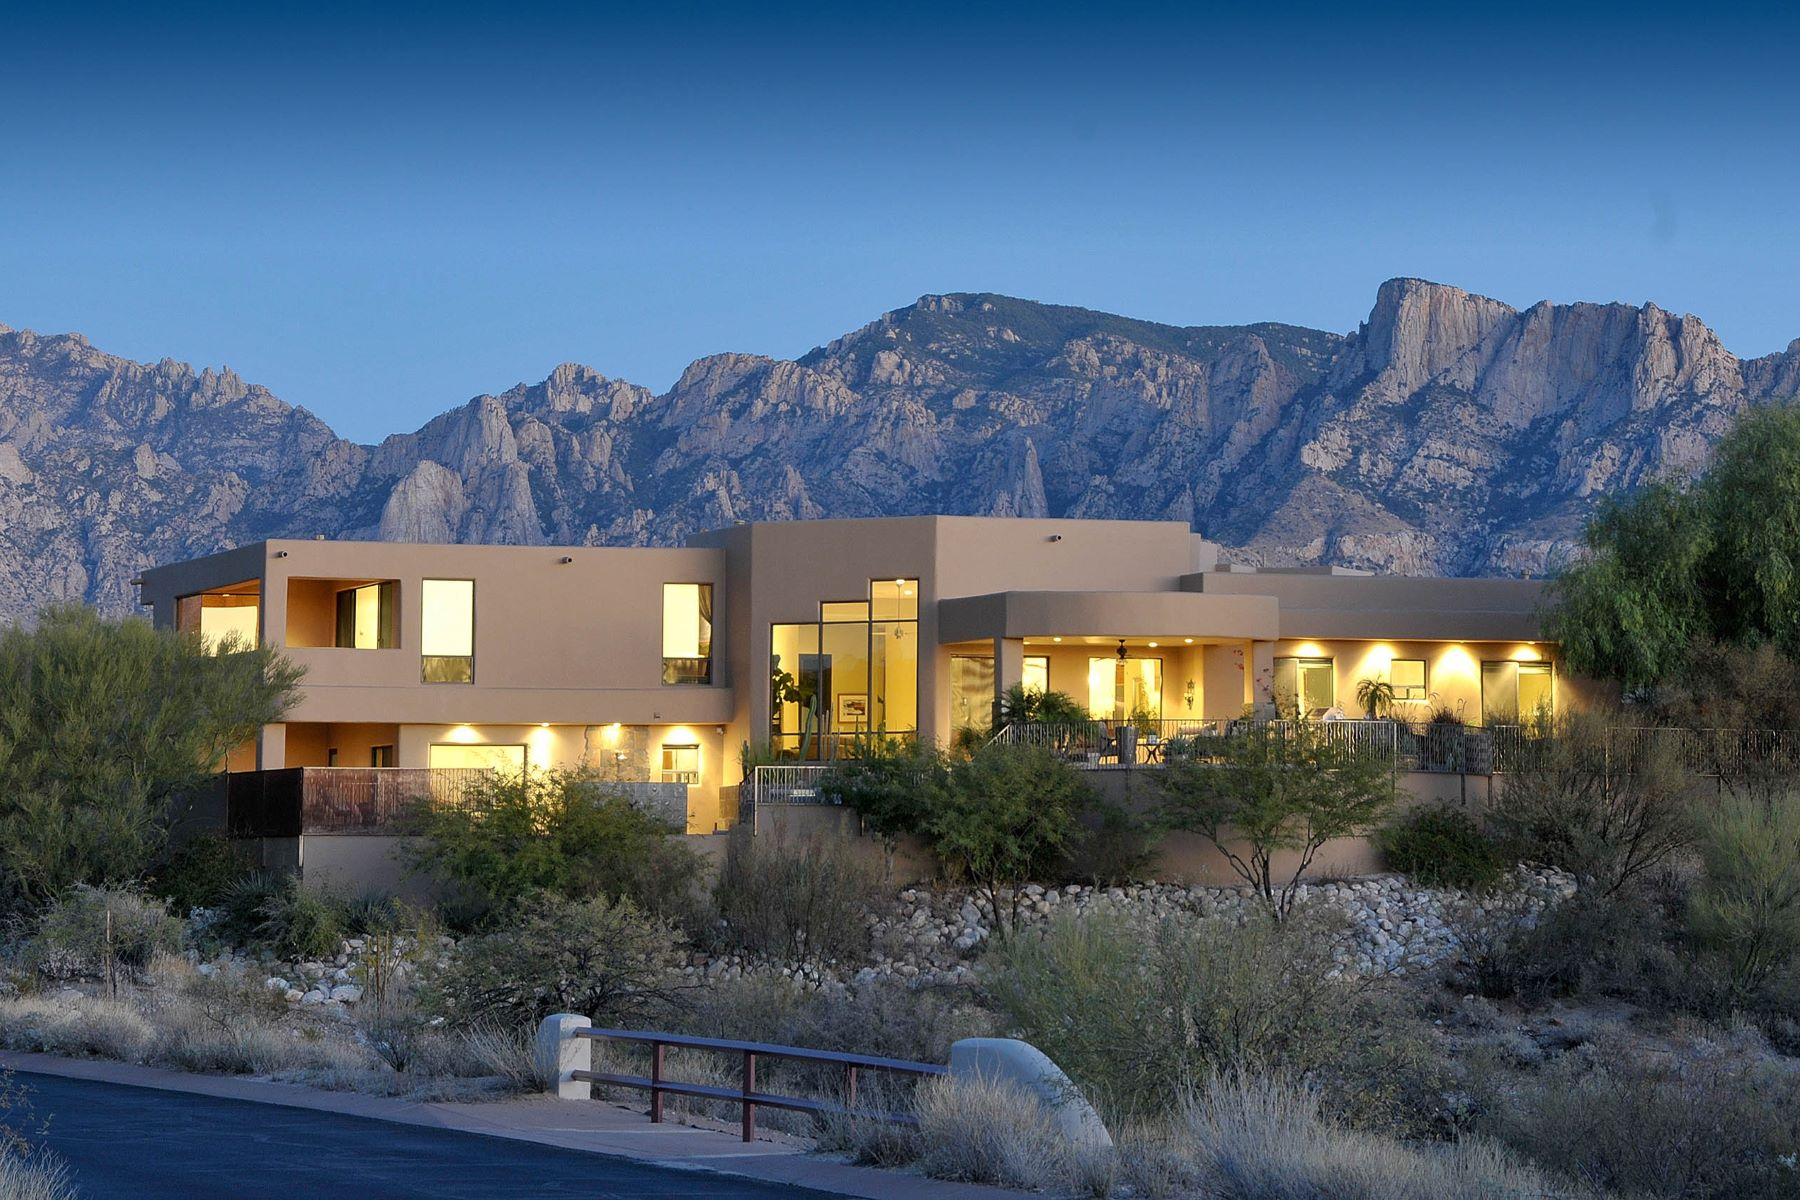 Single Family Home for Sale at Stunning Desert Contemporary Ultra-Custom Residence 12137 N Solitude Ridge Place Oro Valley, Arizona, 85755 United States